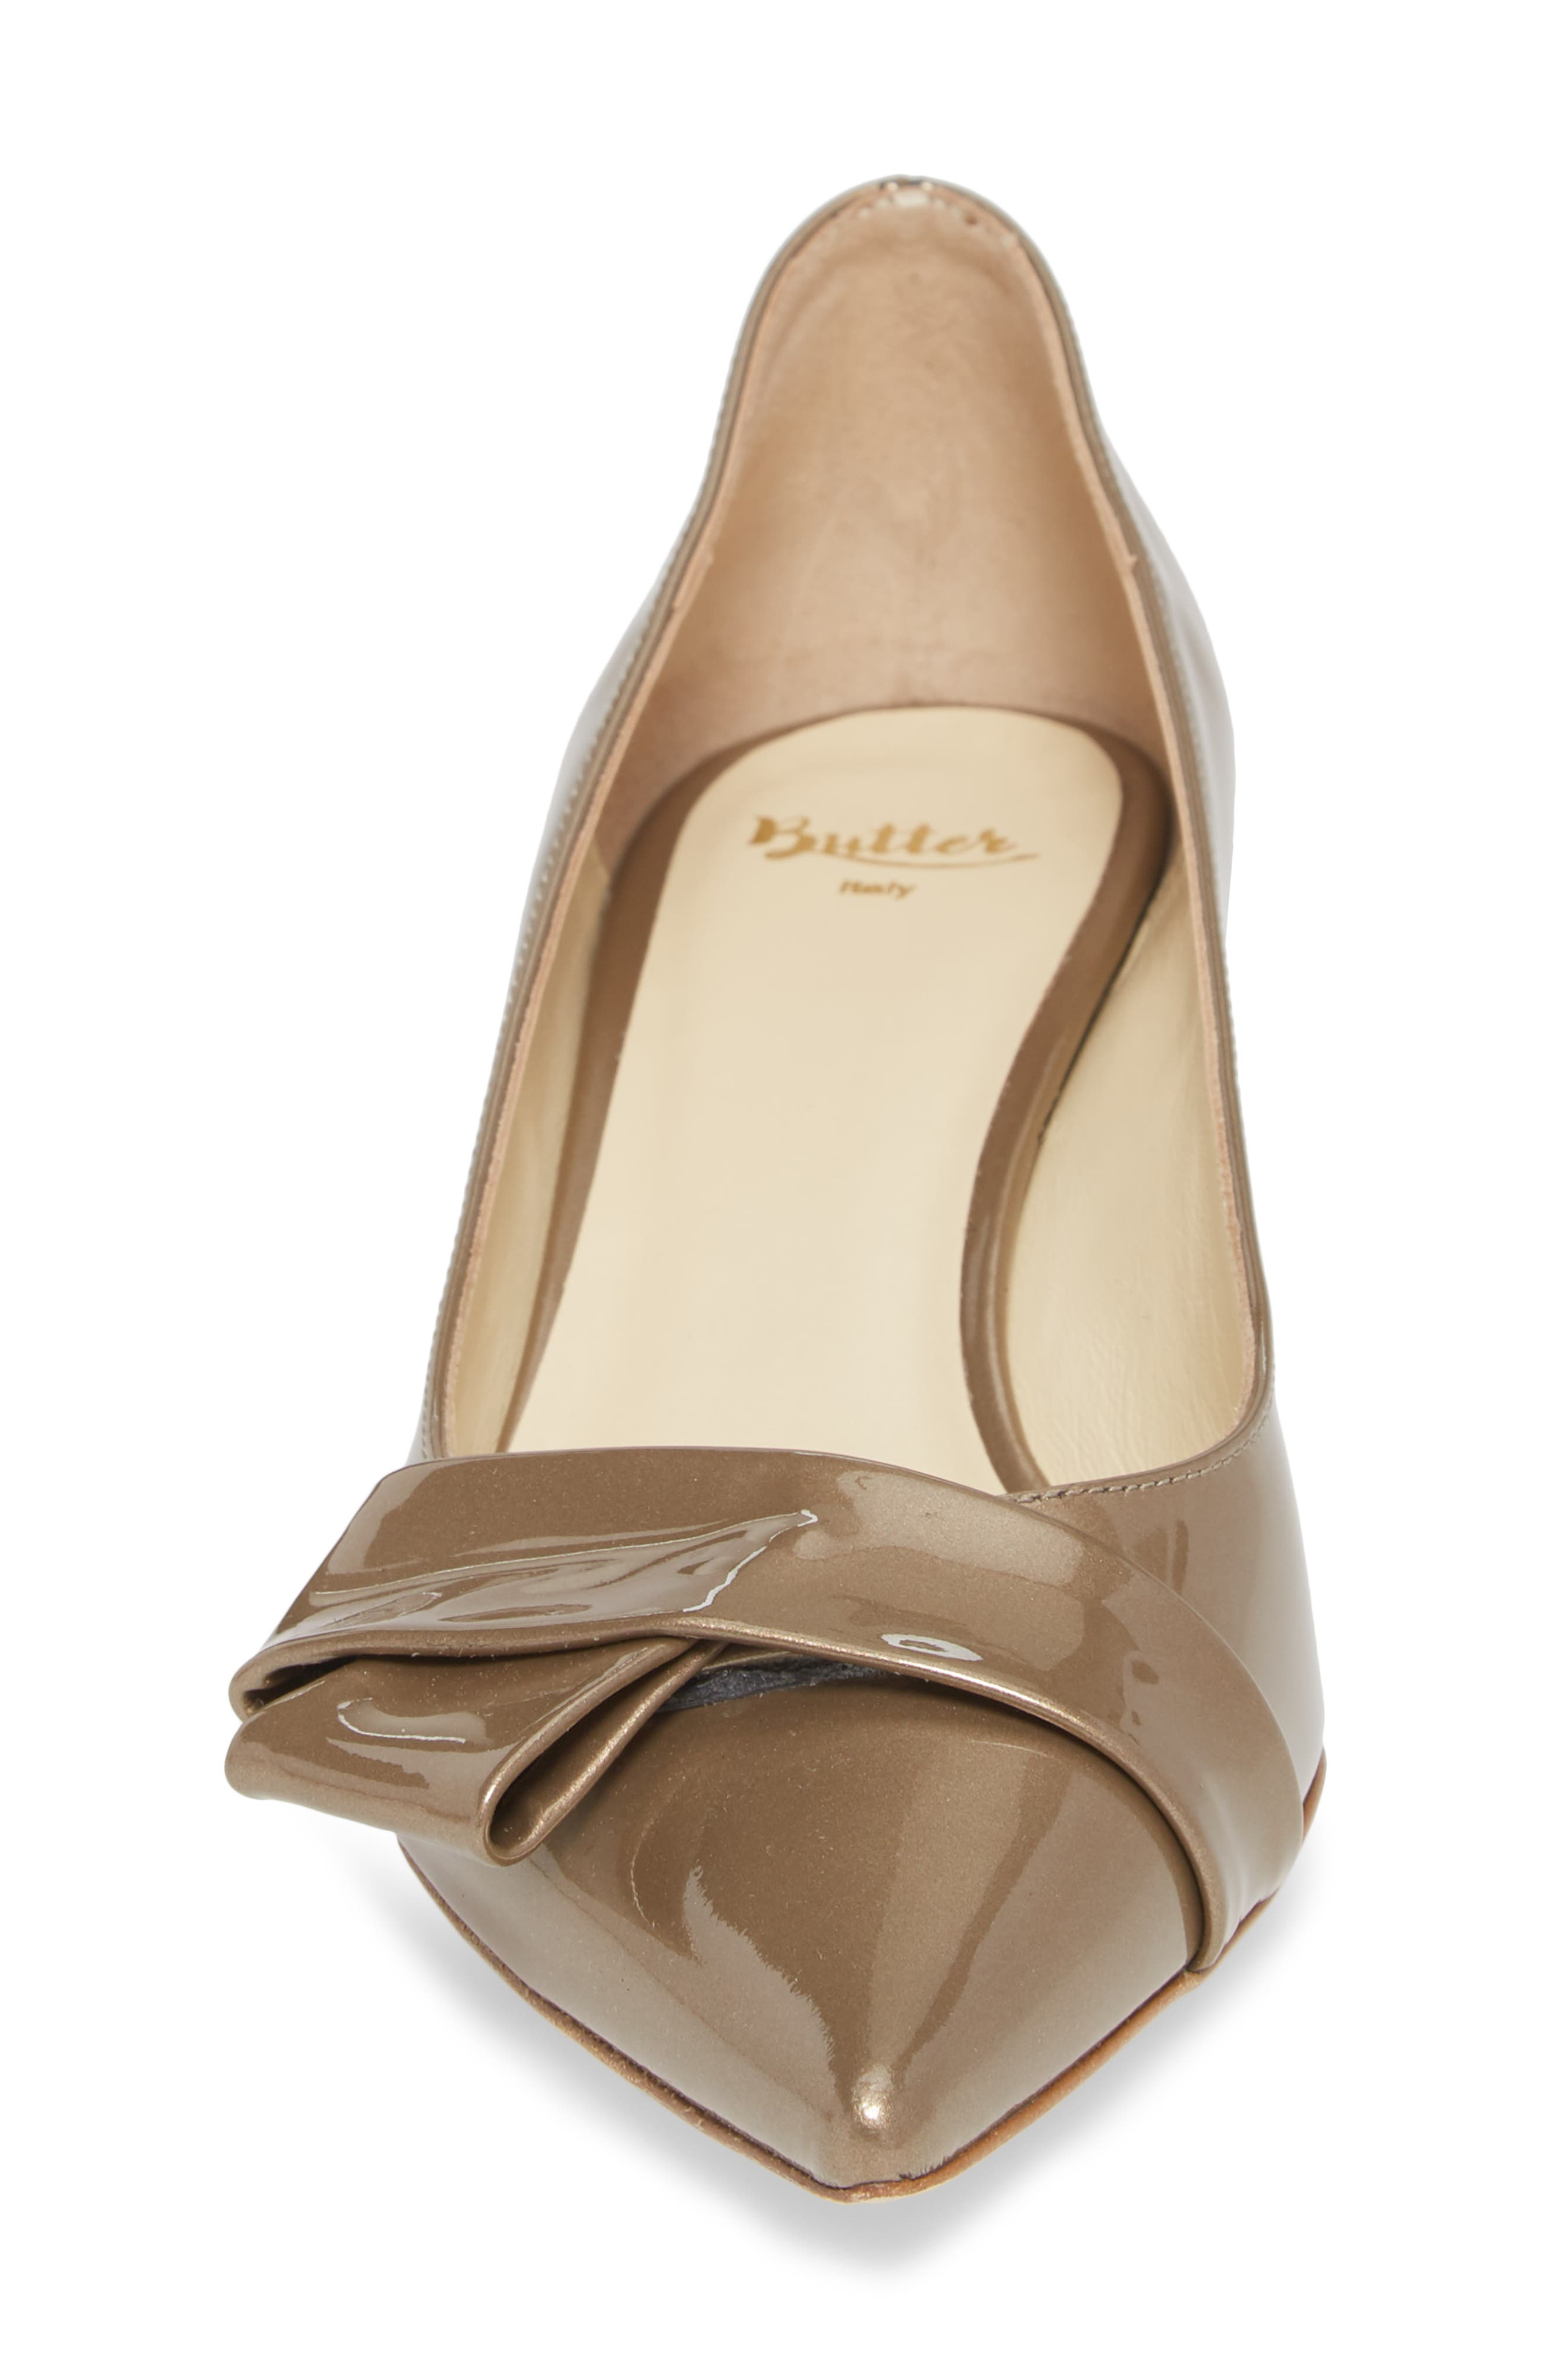 Butter Bliss Pointy Toe Pump,                             Alternate thumbnail 11, color,